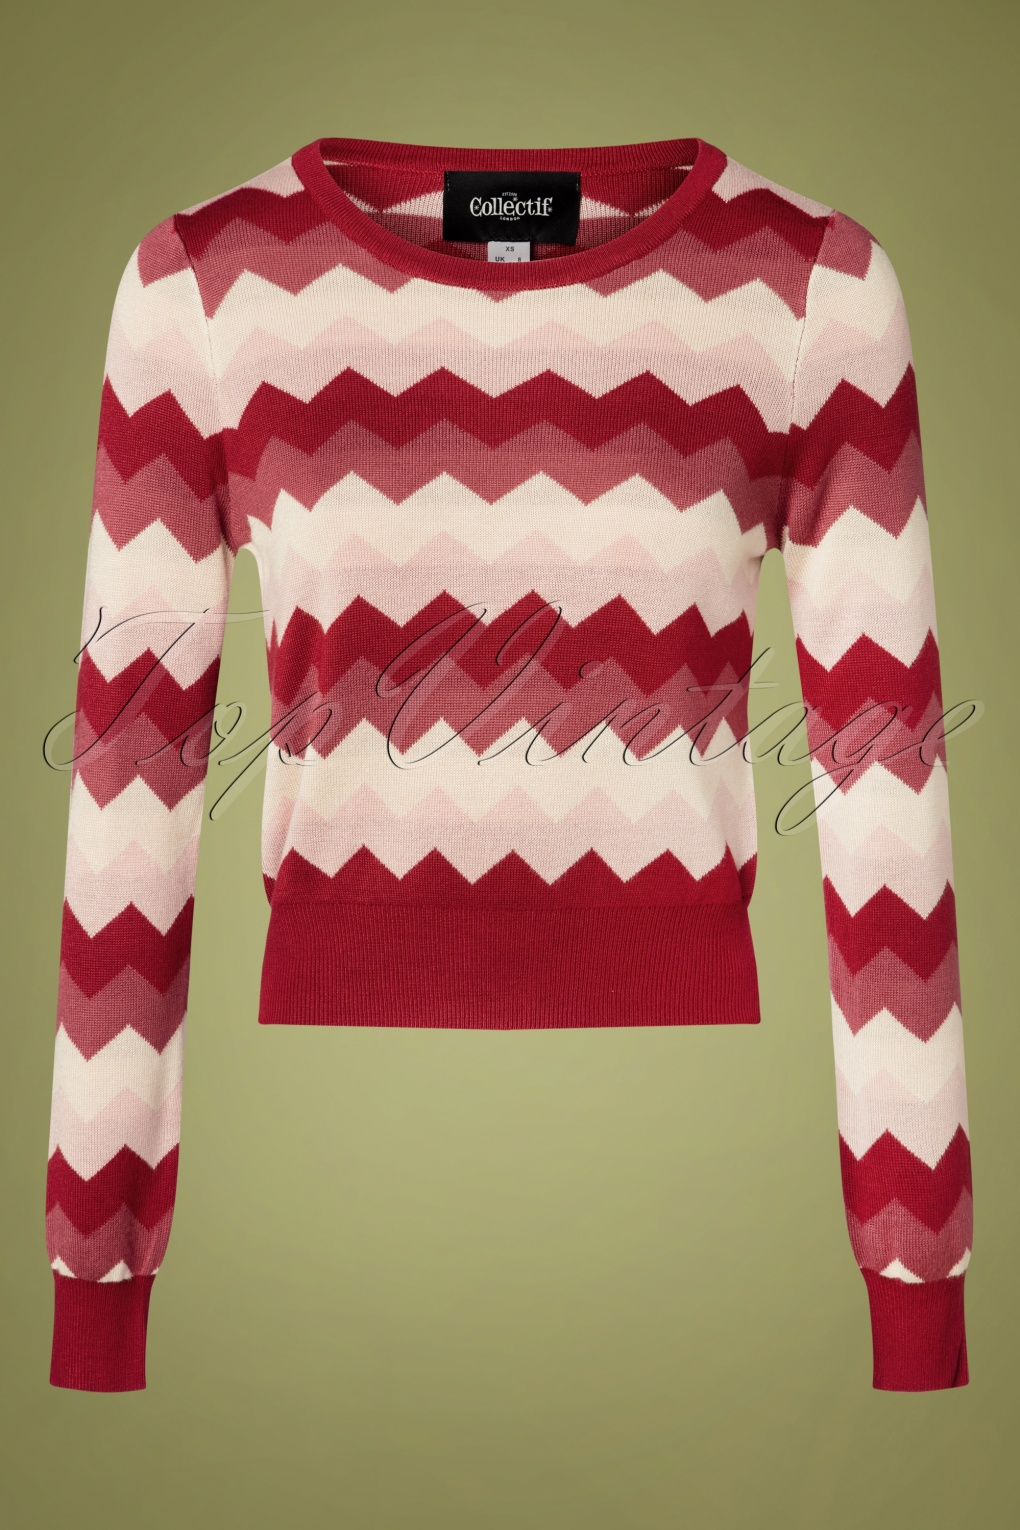 Vintage Sweaters, Retro Sweaters & Cardigan 60s Machi Zig Zag Knitted Top in Red £37.84 AT vintagedancer.com